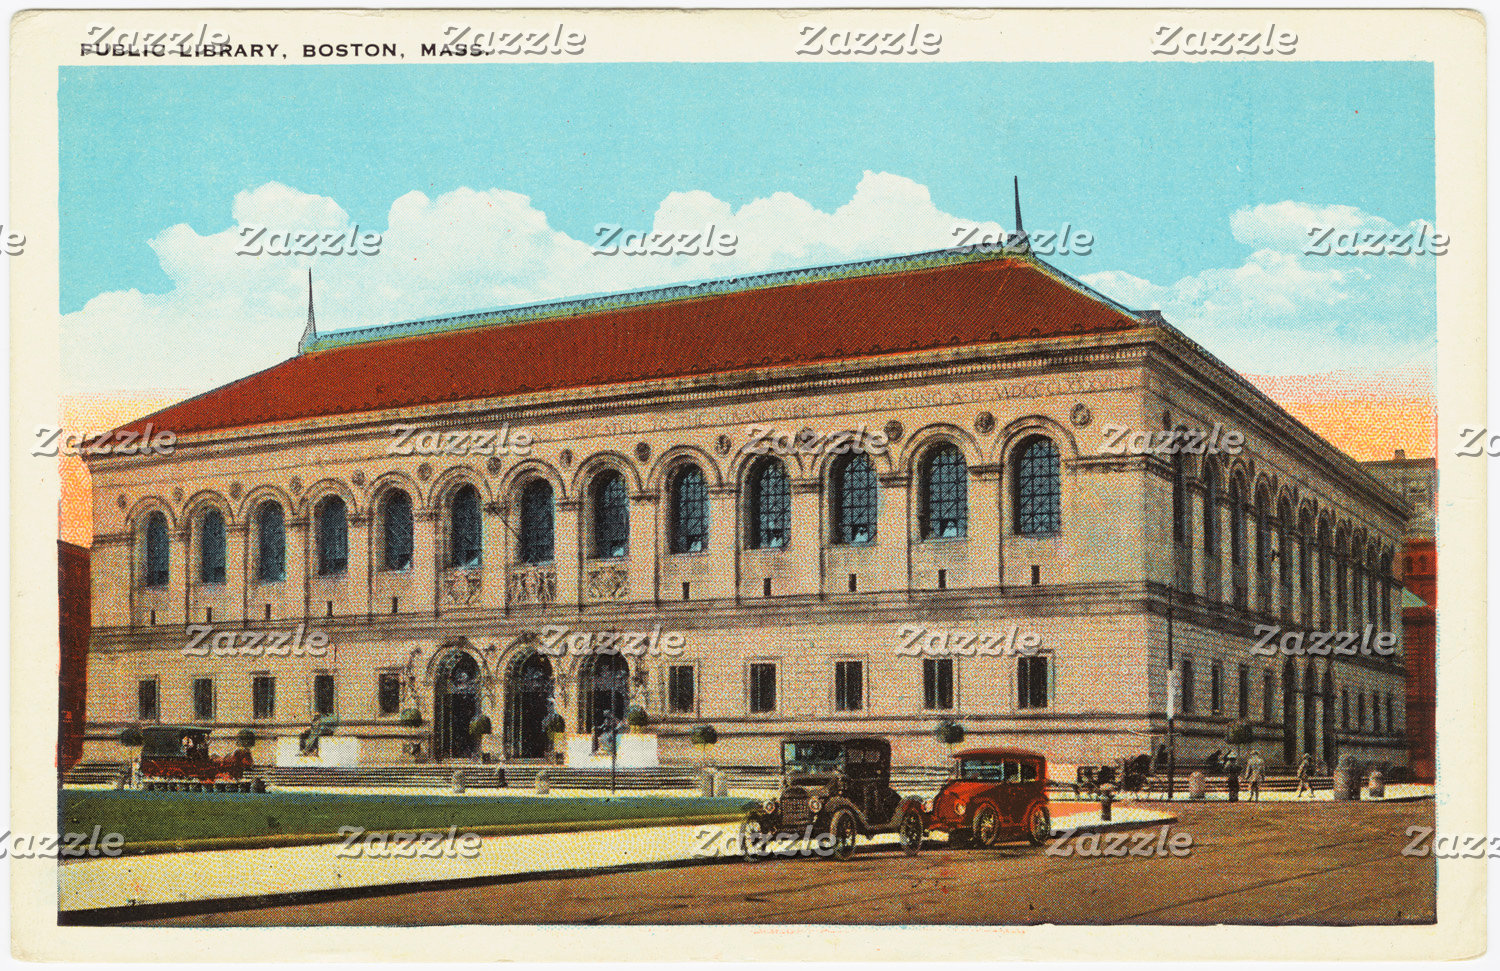 Art and Architecture of the BPL